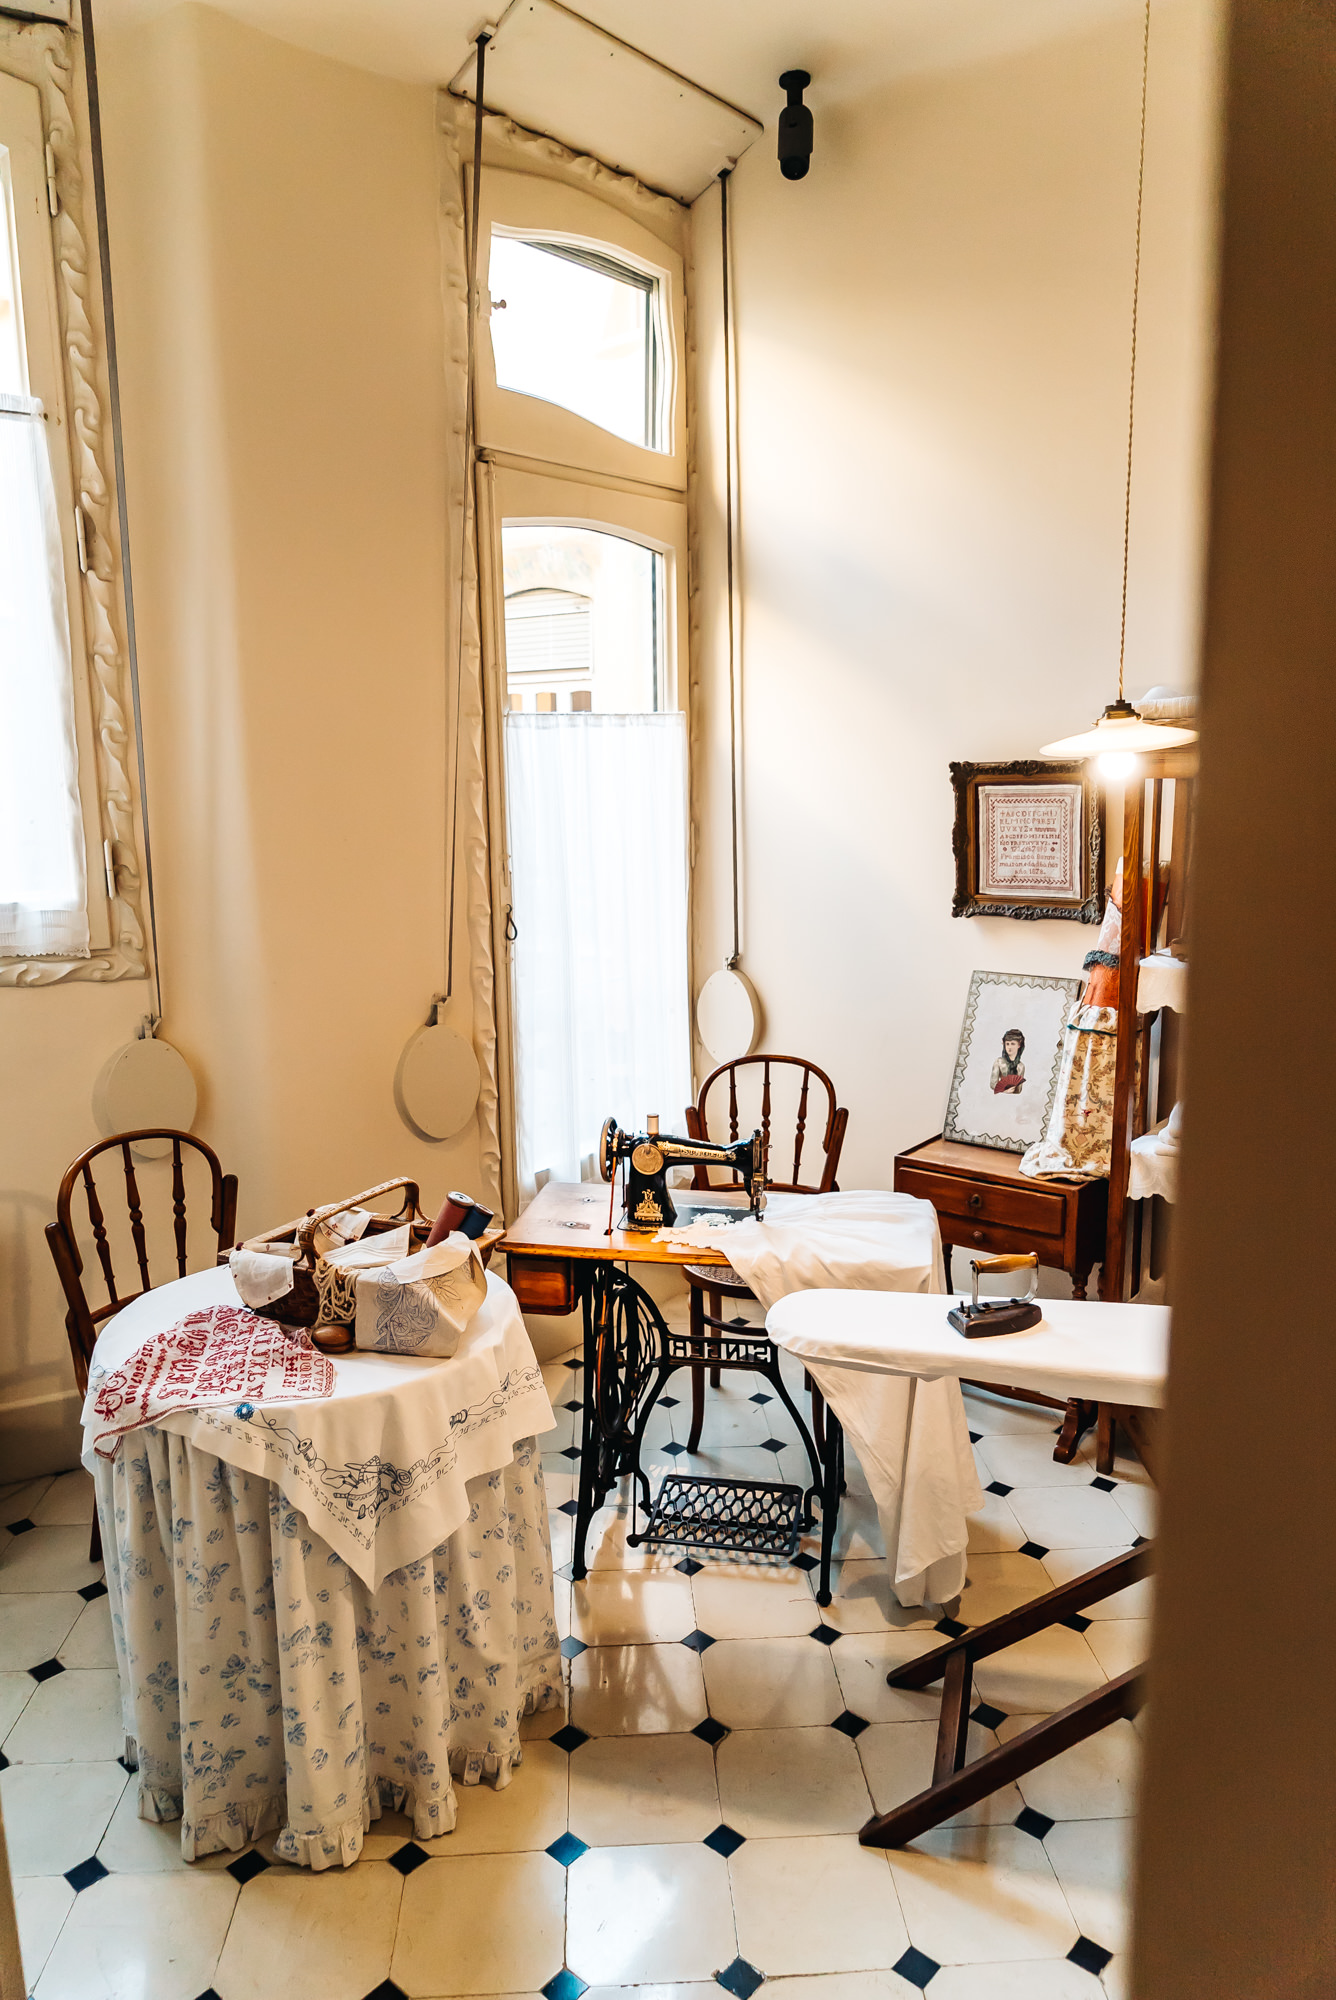 sewing and ironing room of Casa Mila